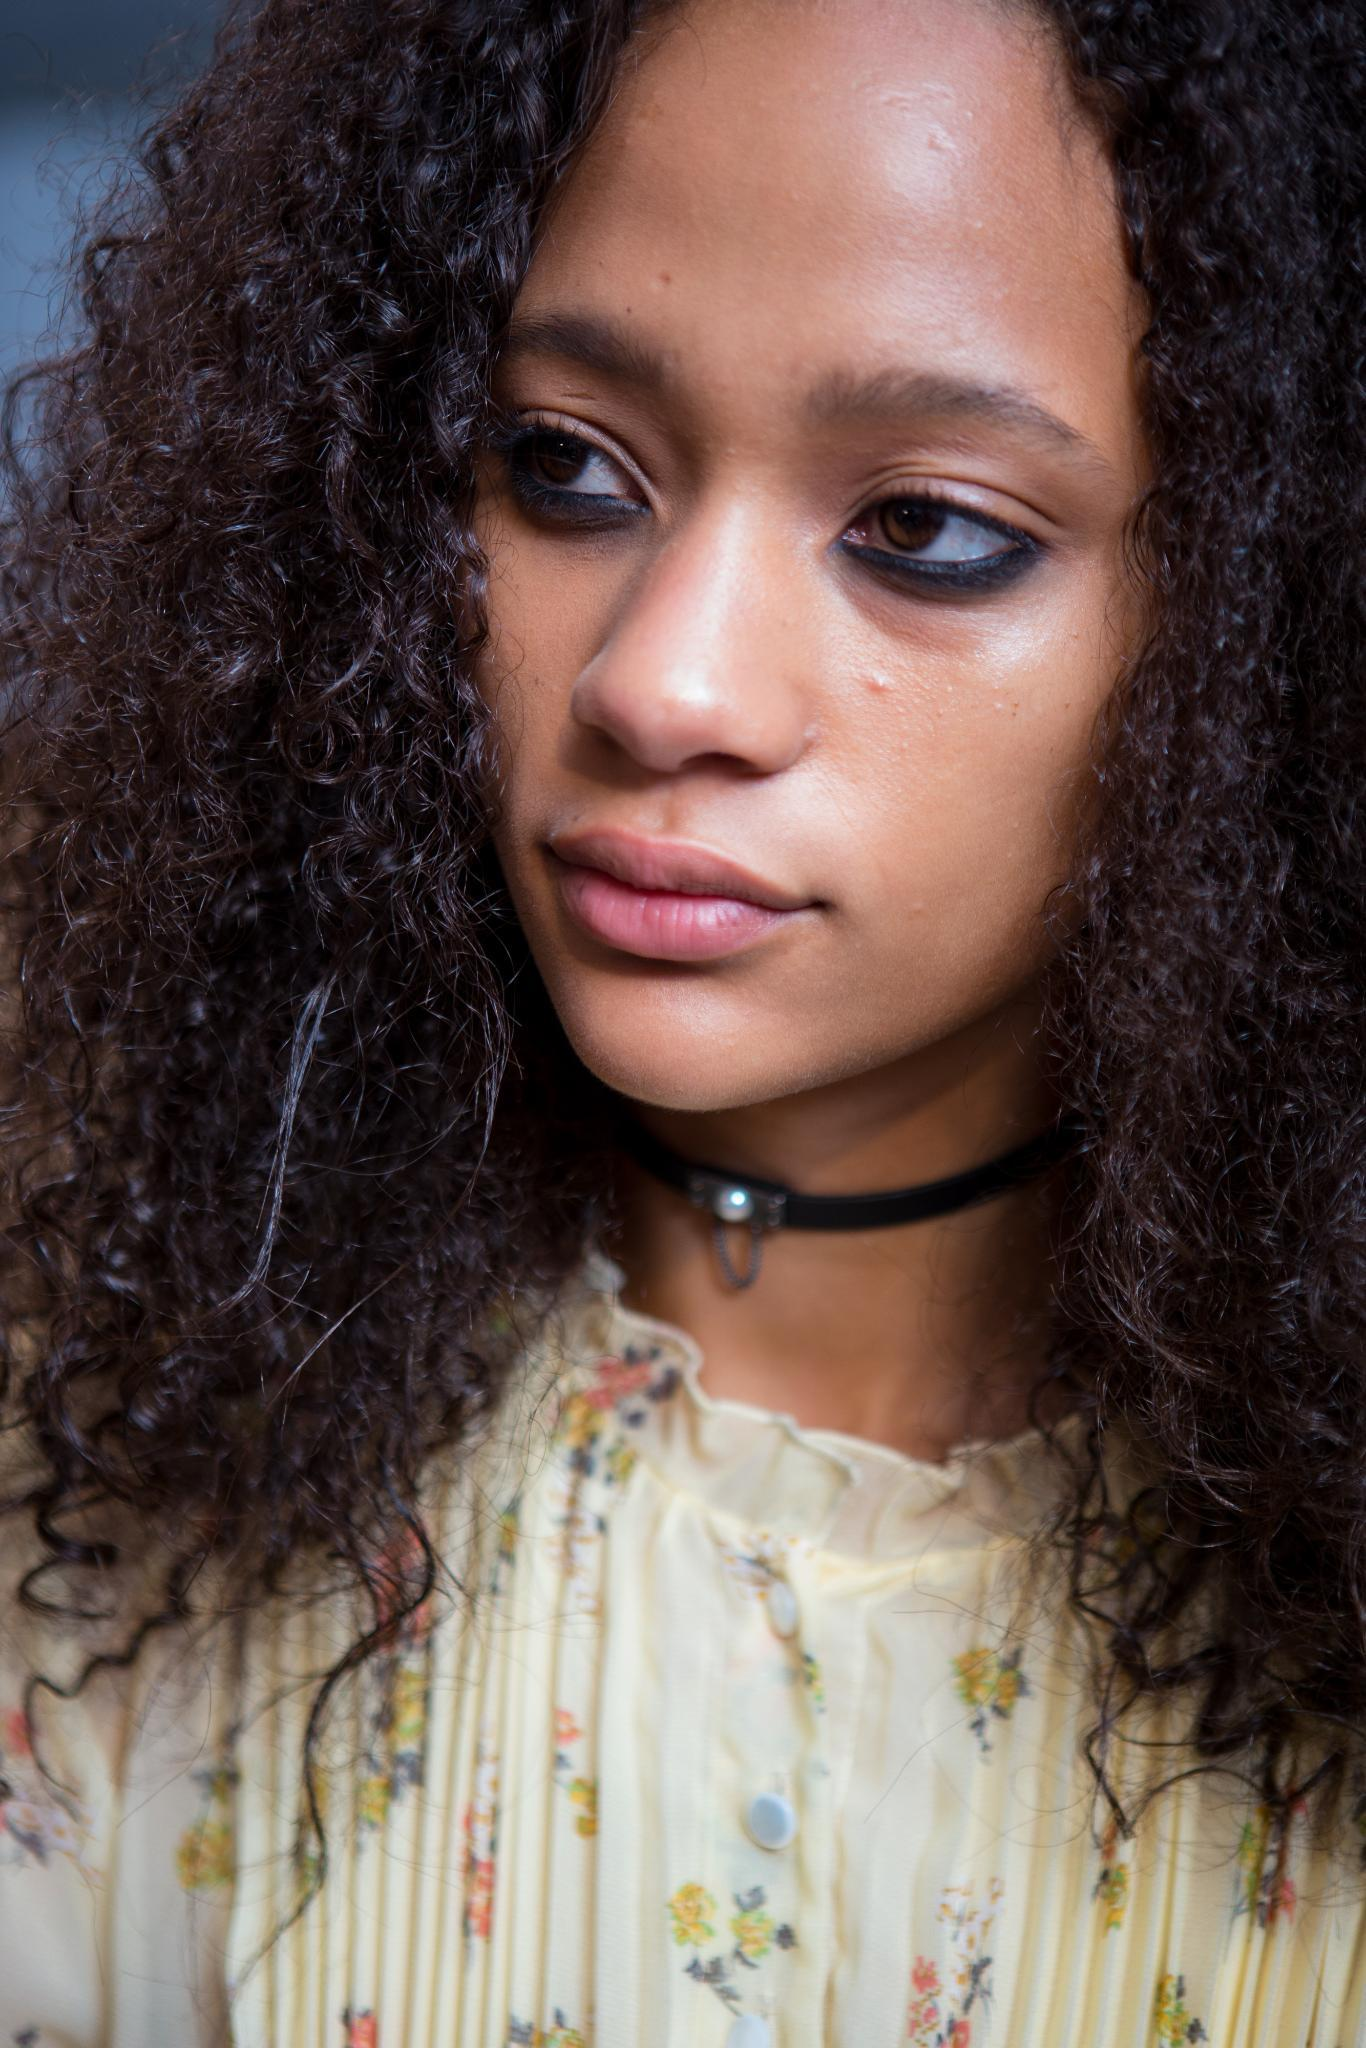 backstage shot of model with long curly hair with a choker, wearing a flora